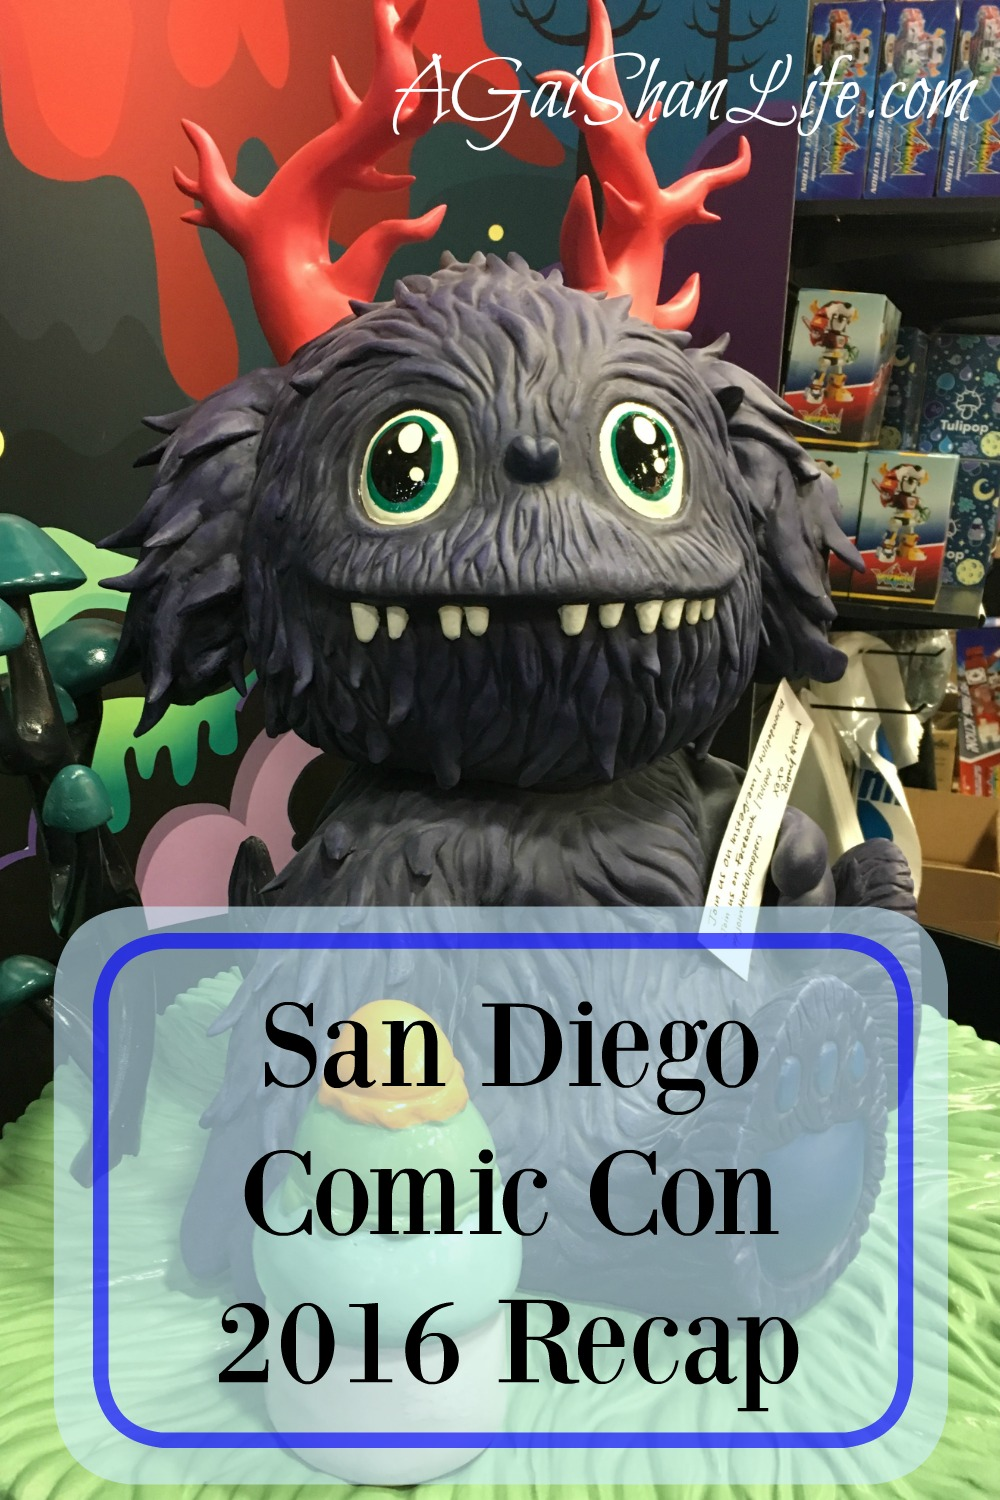 SDCC 2016 Recap: Yet another year of conventioneering